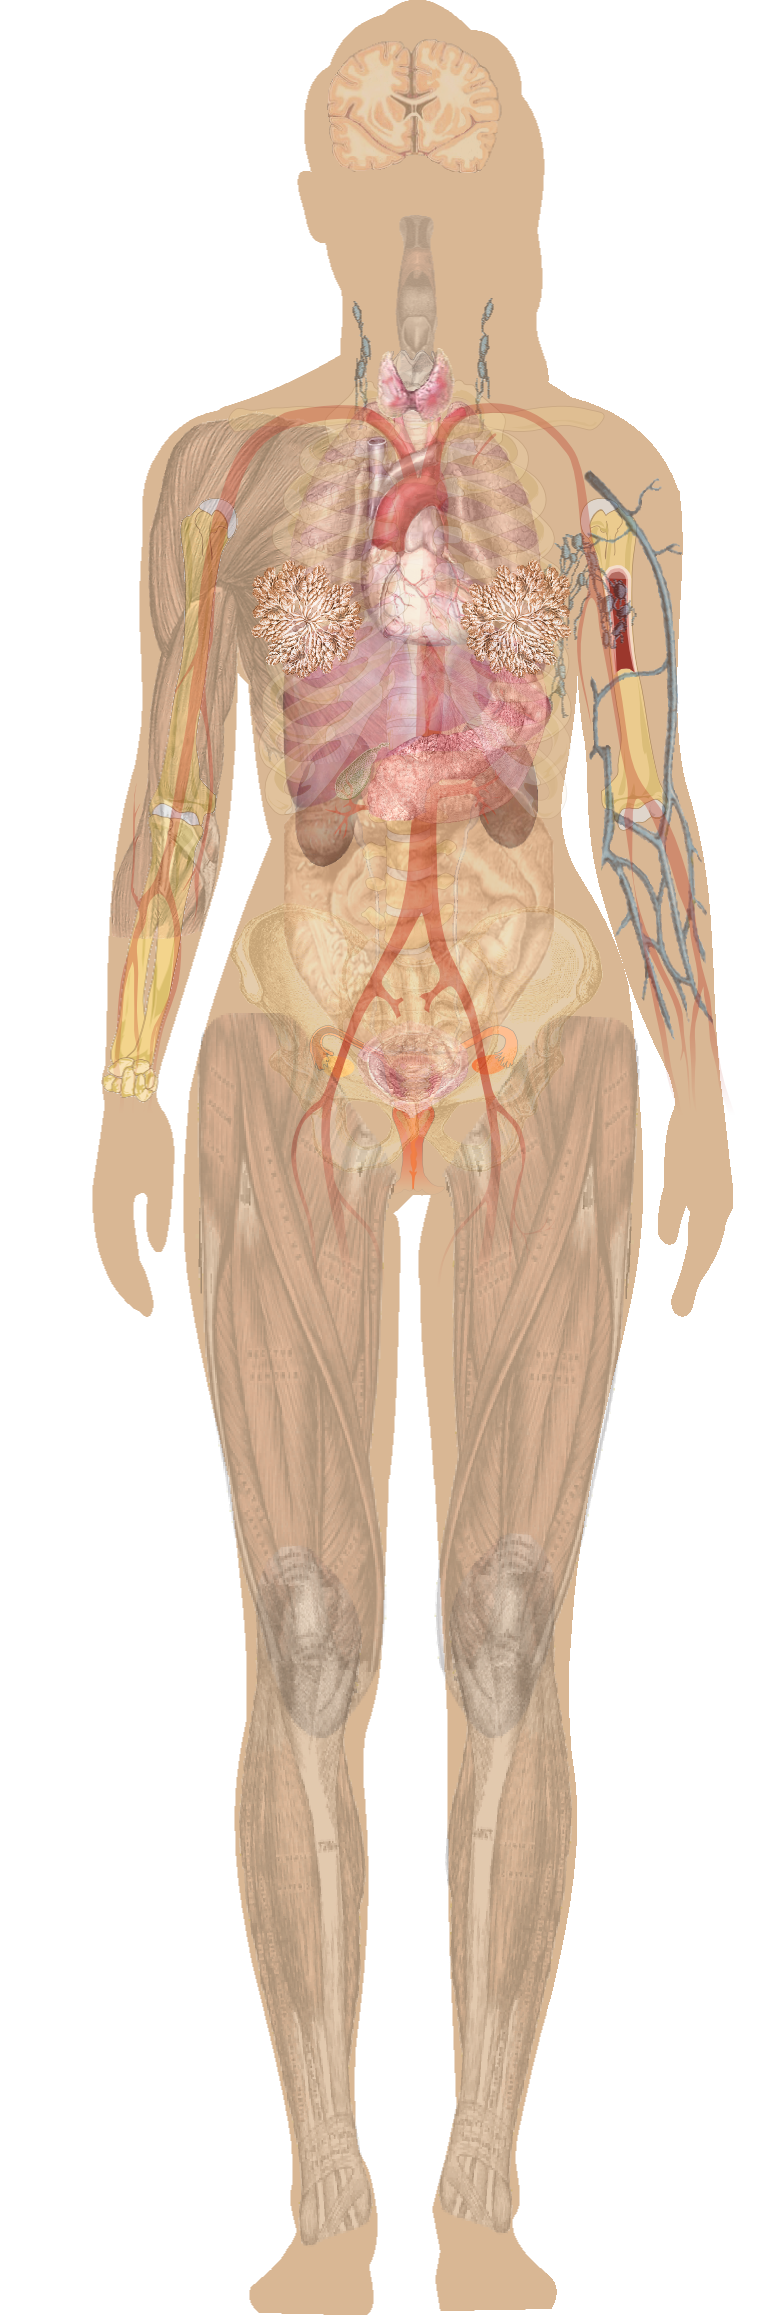 Female organ anatomy